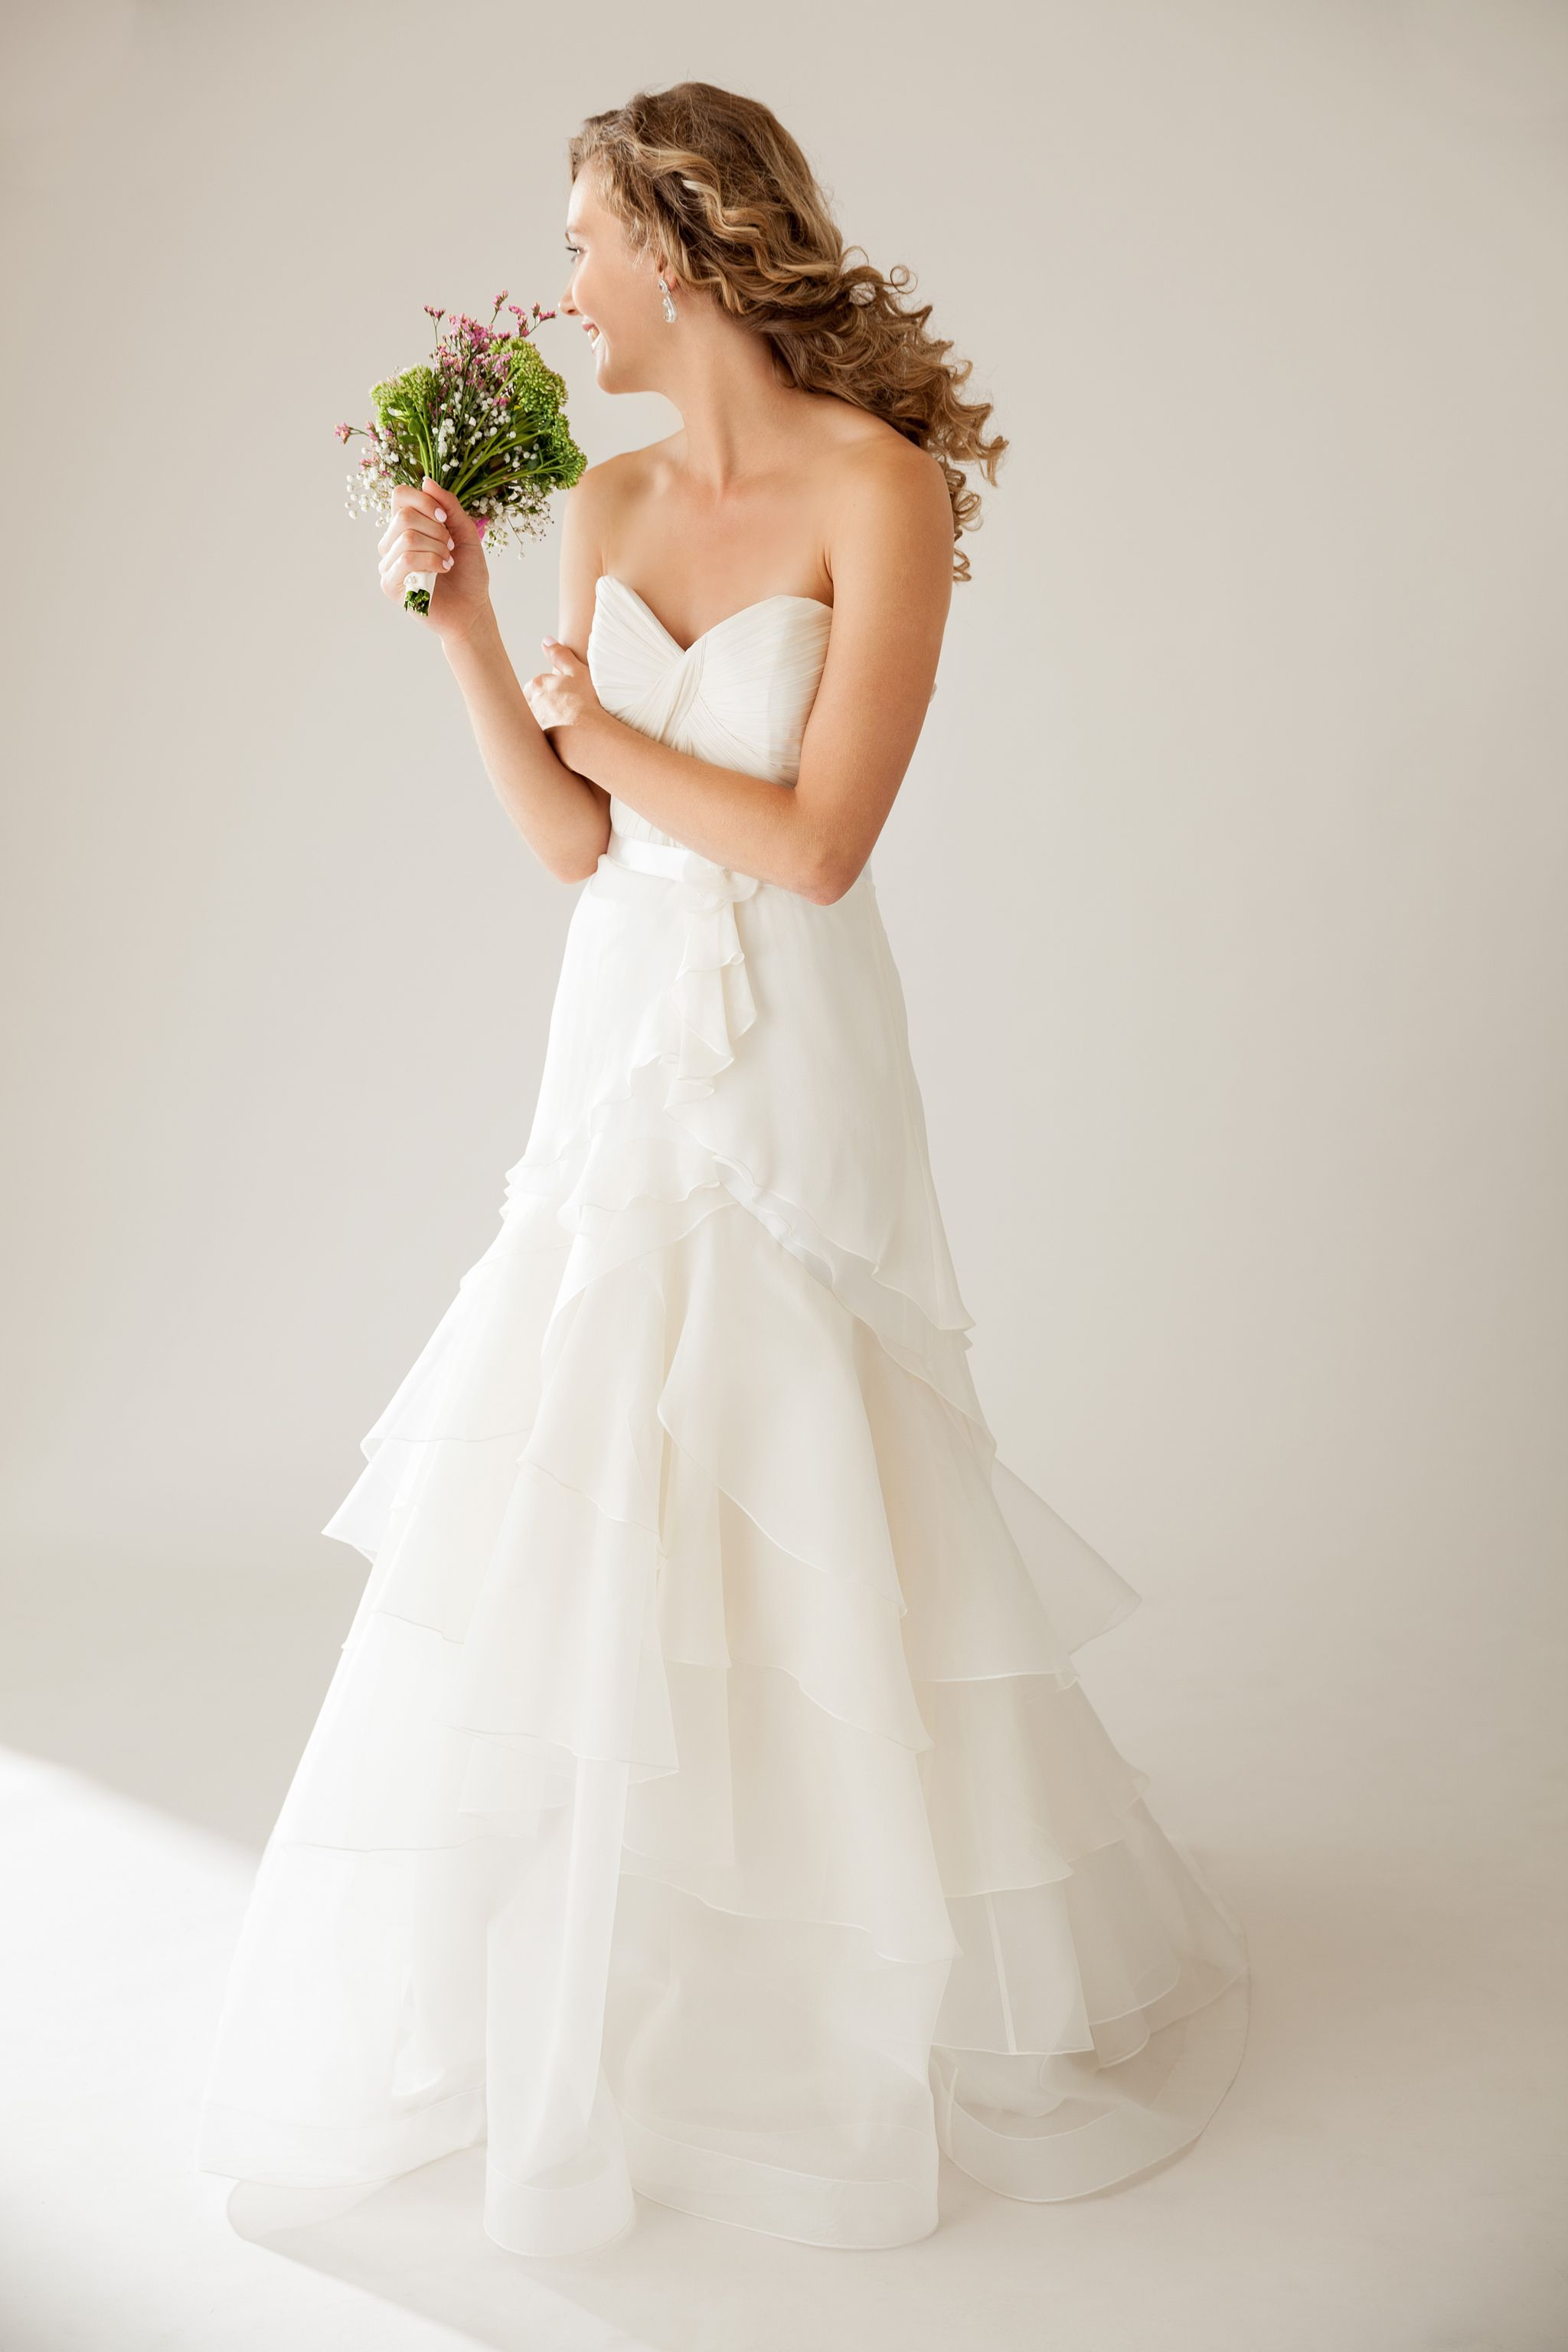 Exquisite by Astrid and Mercedes, Lea-Ann Belter Bridal